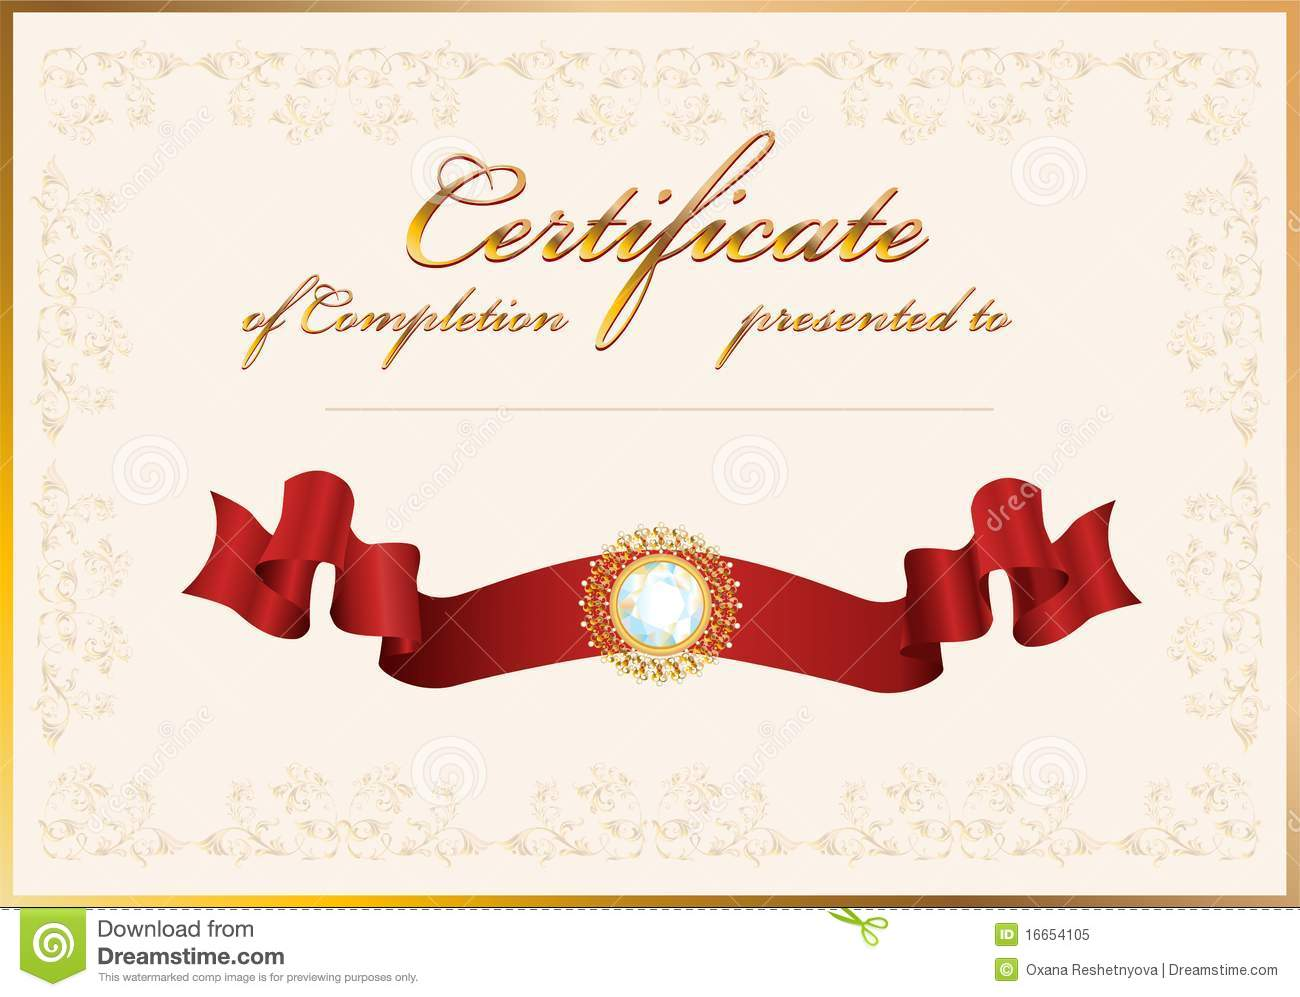 Certificate of achievement template with gold border theme stock.